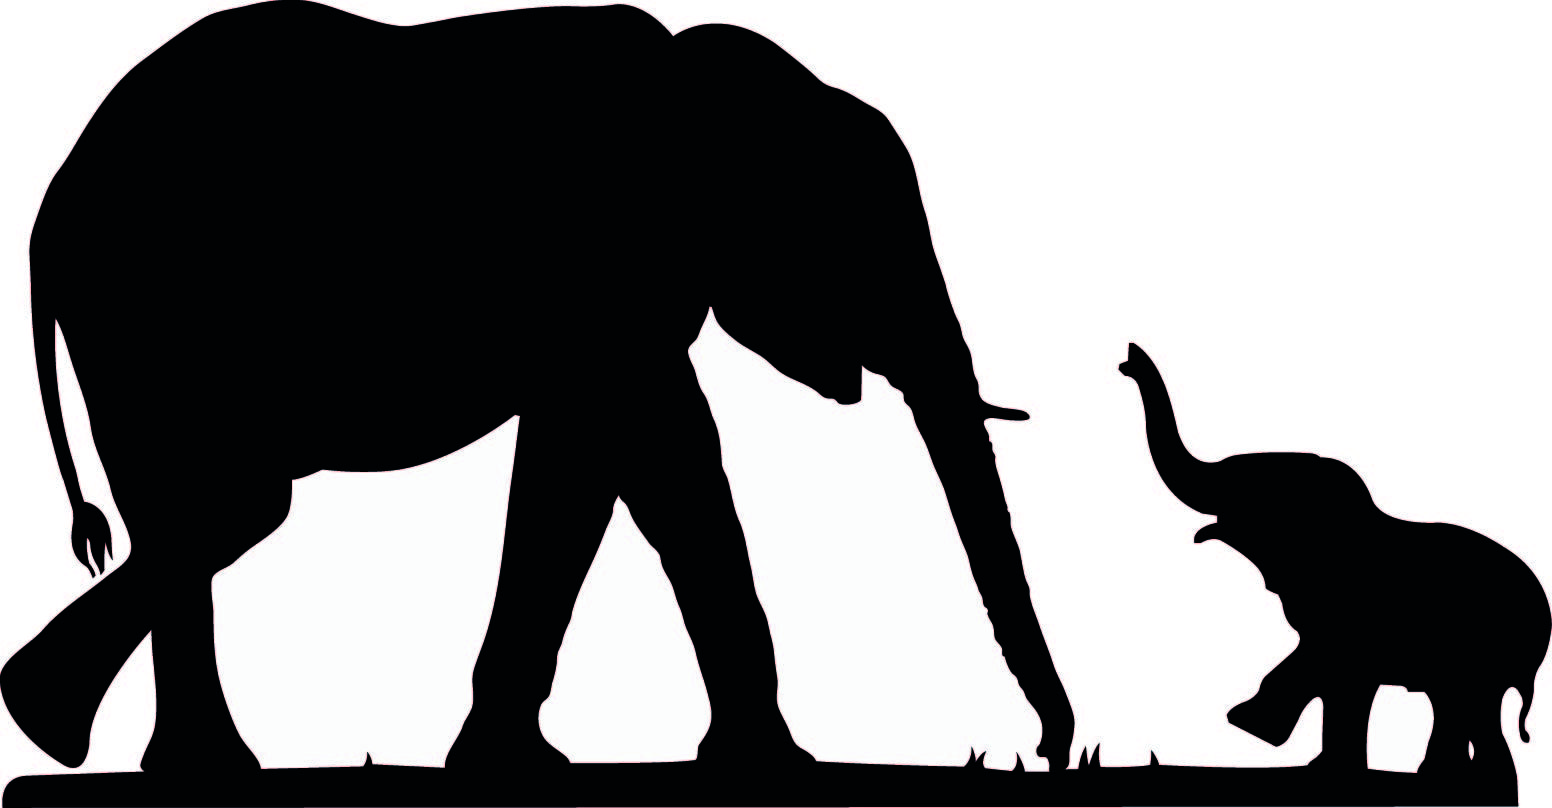 cute elephant silhouette elephant silhouette mother and baby